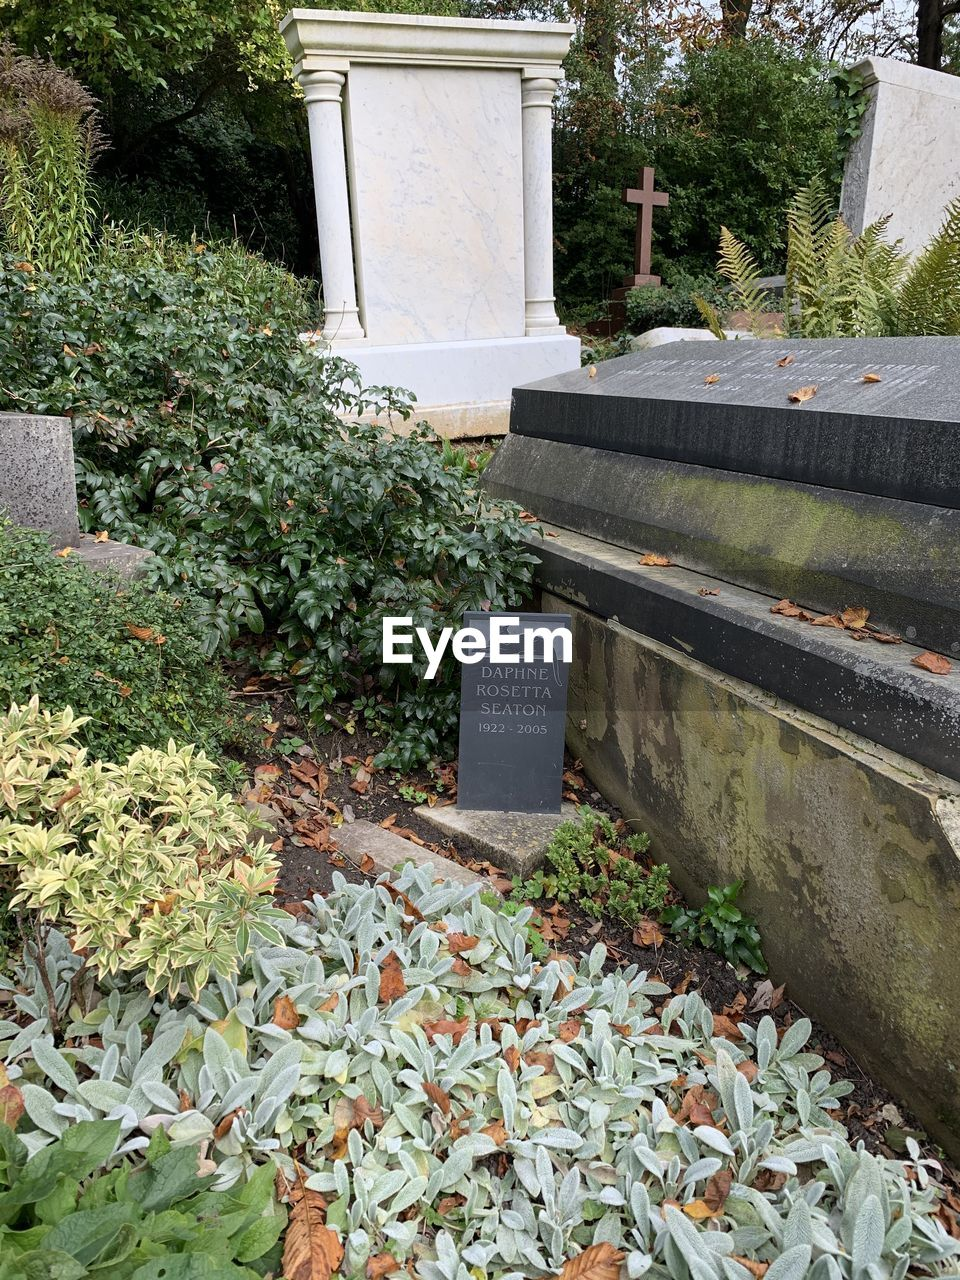 plant, leaf, architecture, built structure, cemetery, day, grave, plant part, nature, tombstone, stone, no people, outdoors, building exterior, communication, autumn, memorial, sadness, text